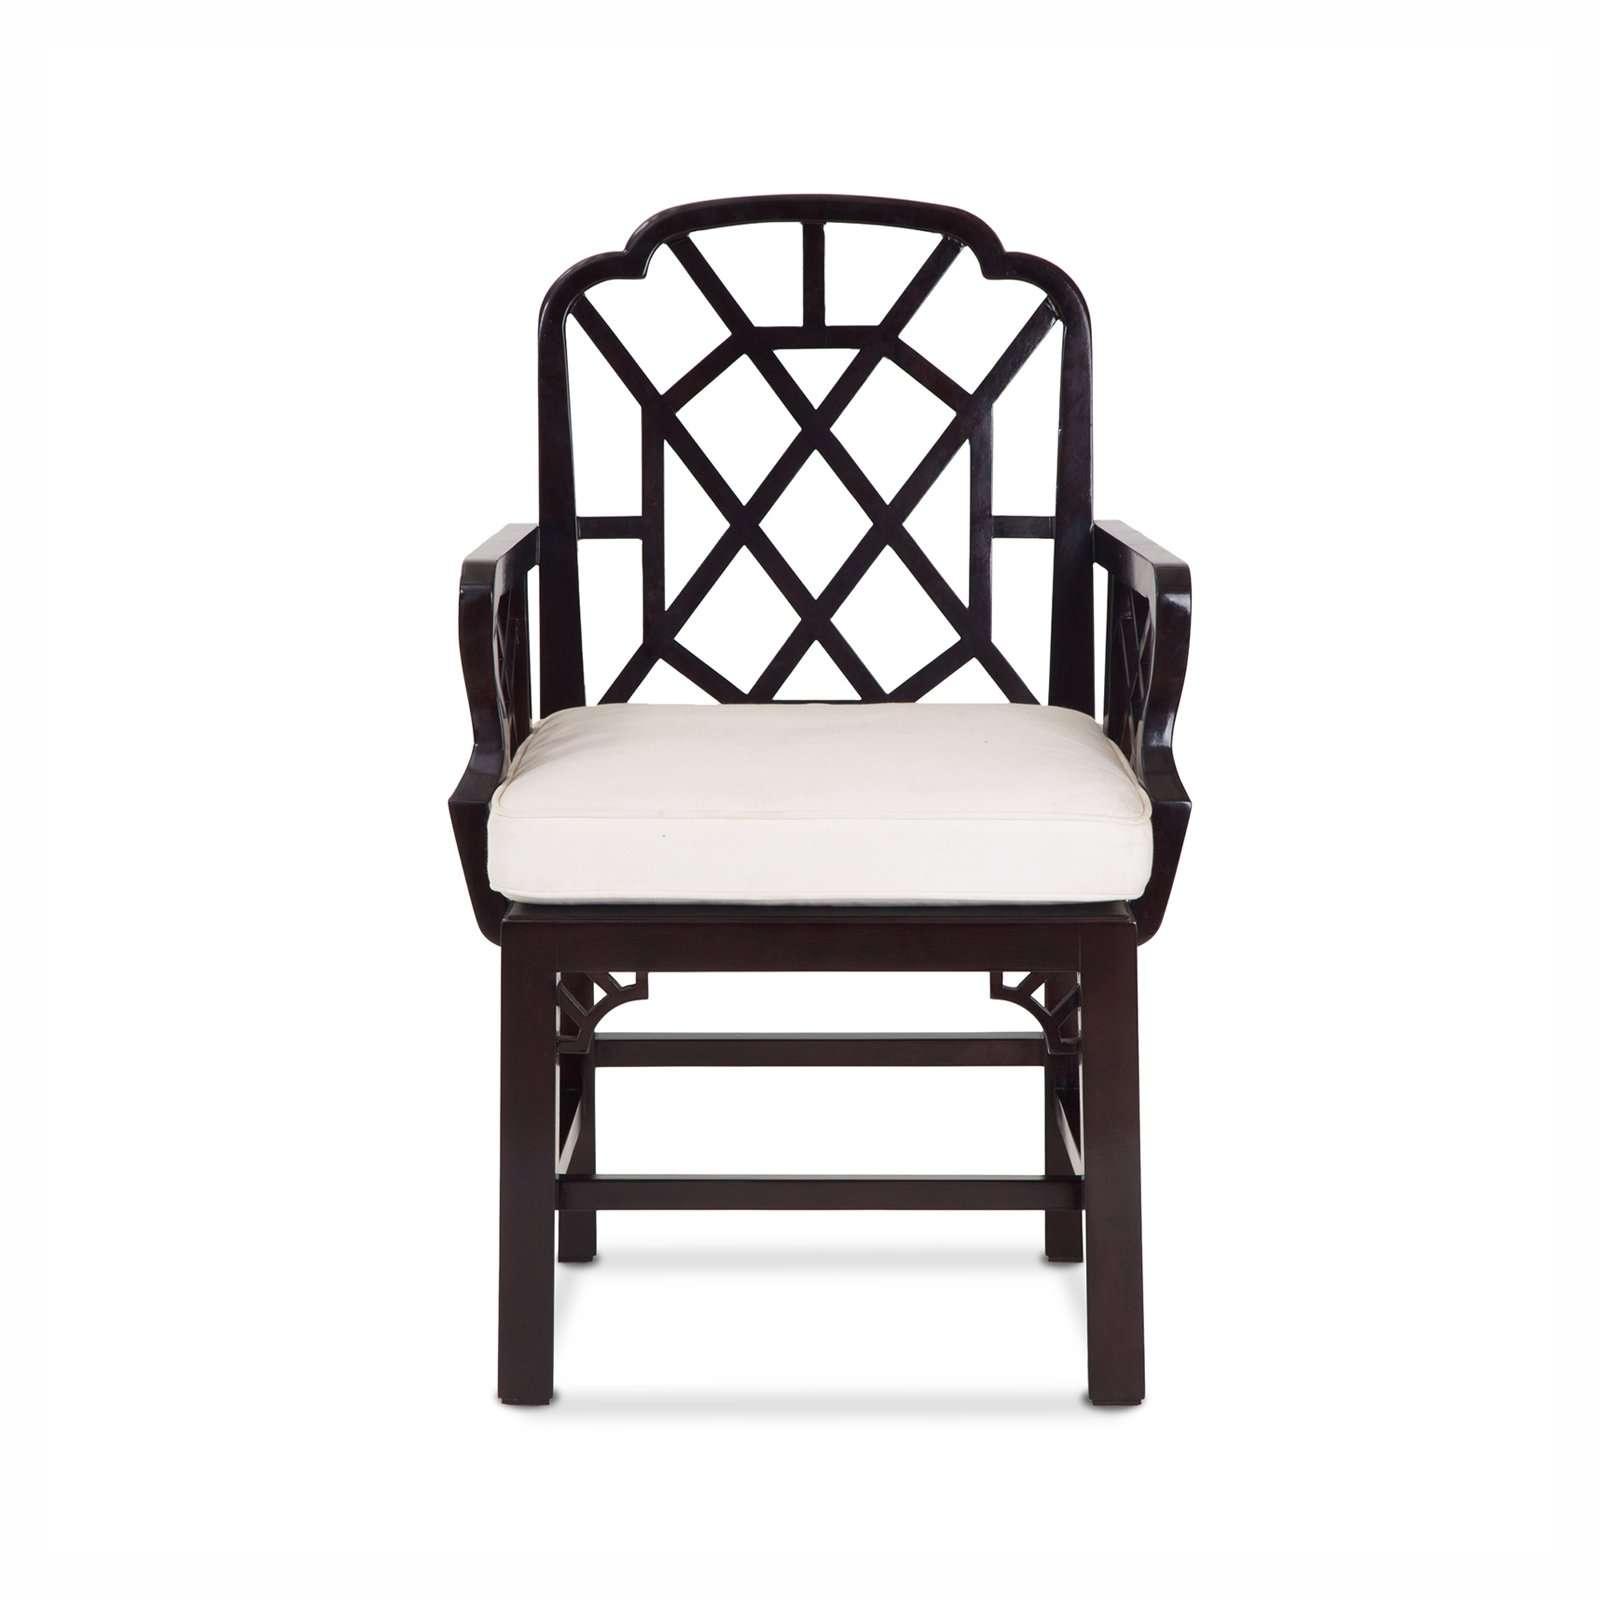 PAGODA ARM CHAIR FRONT - STUART MEMBERY HOME COLLECTION